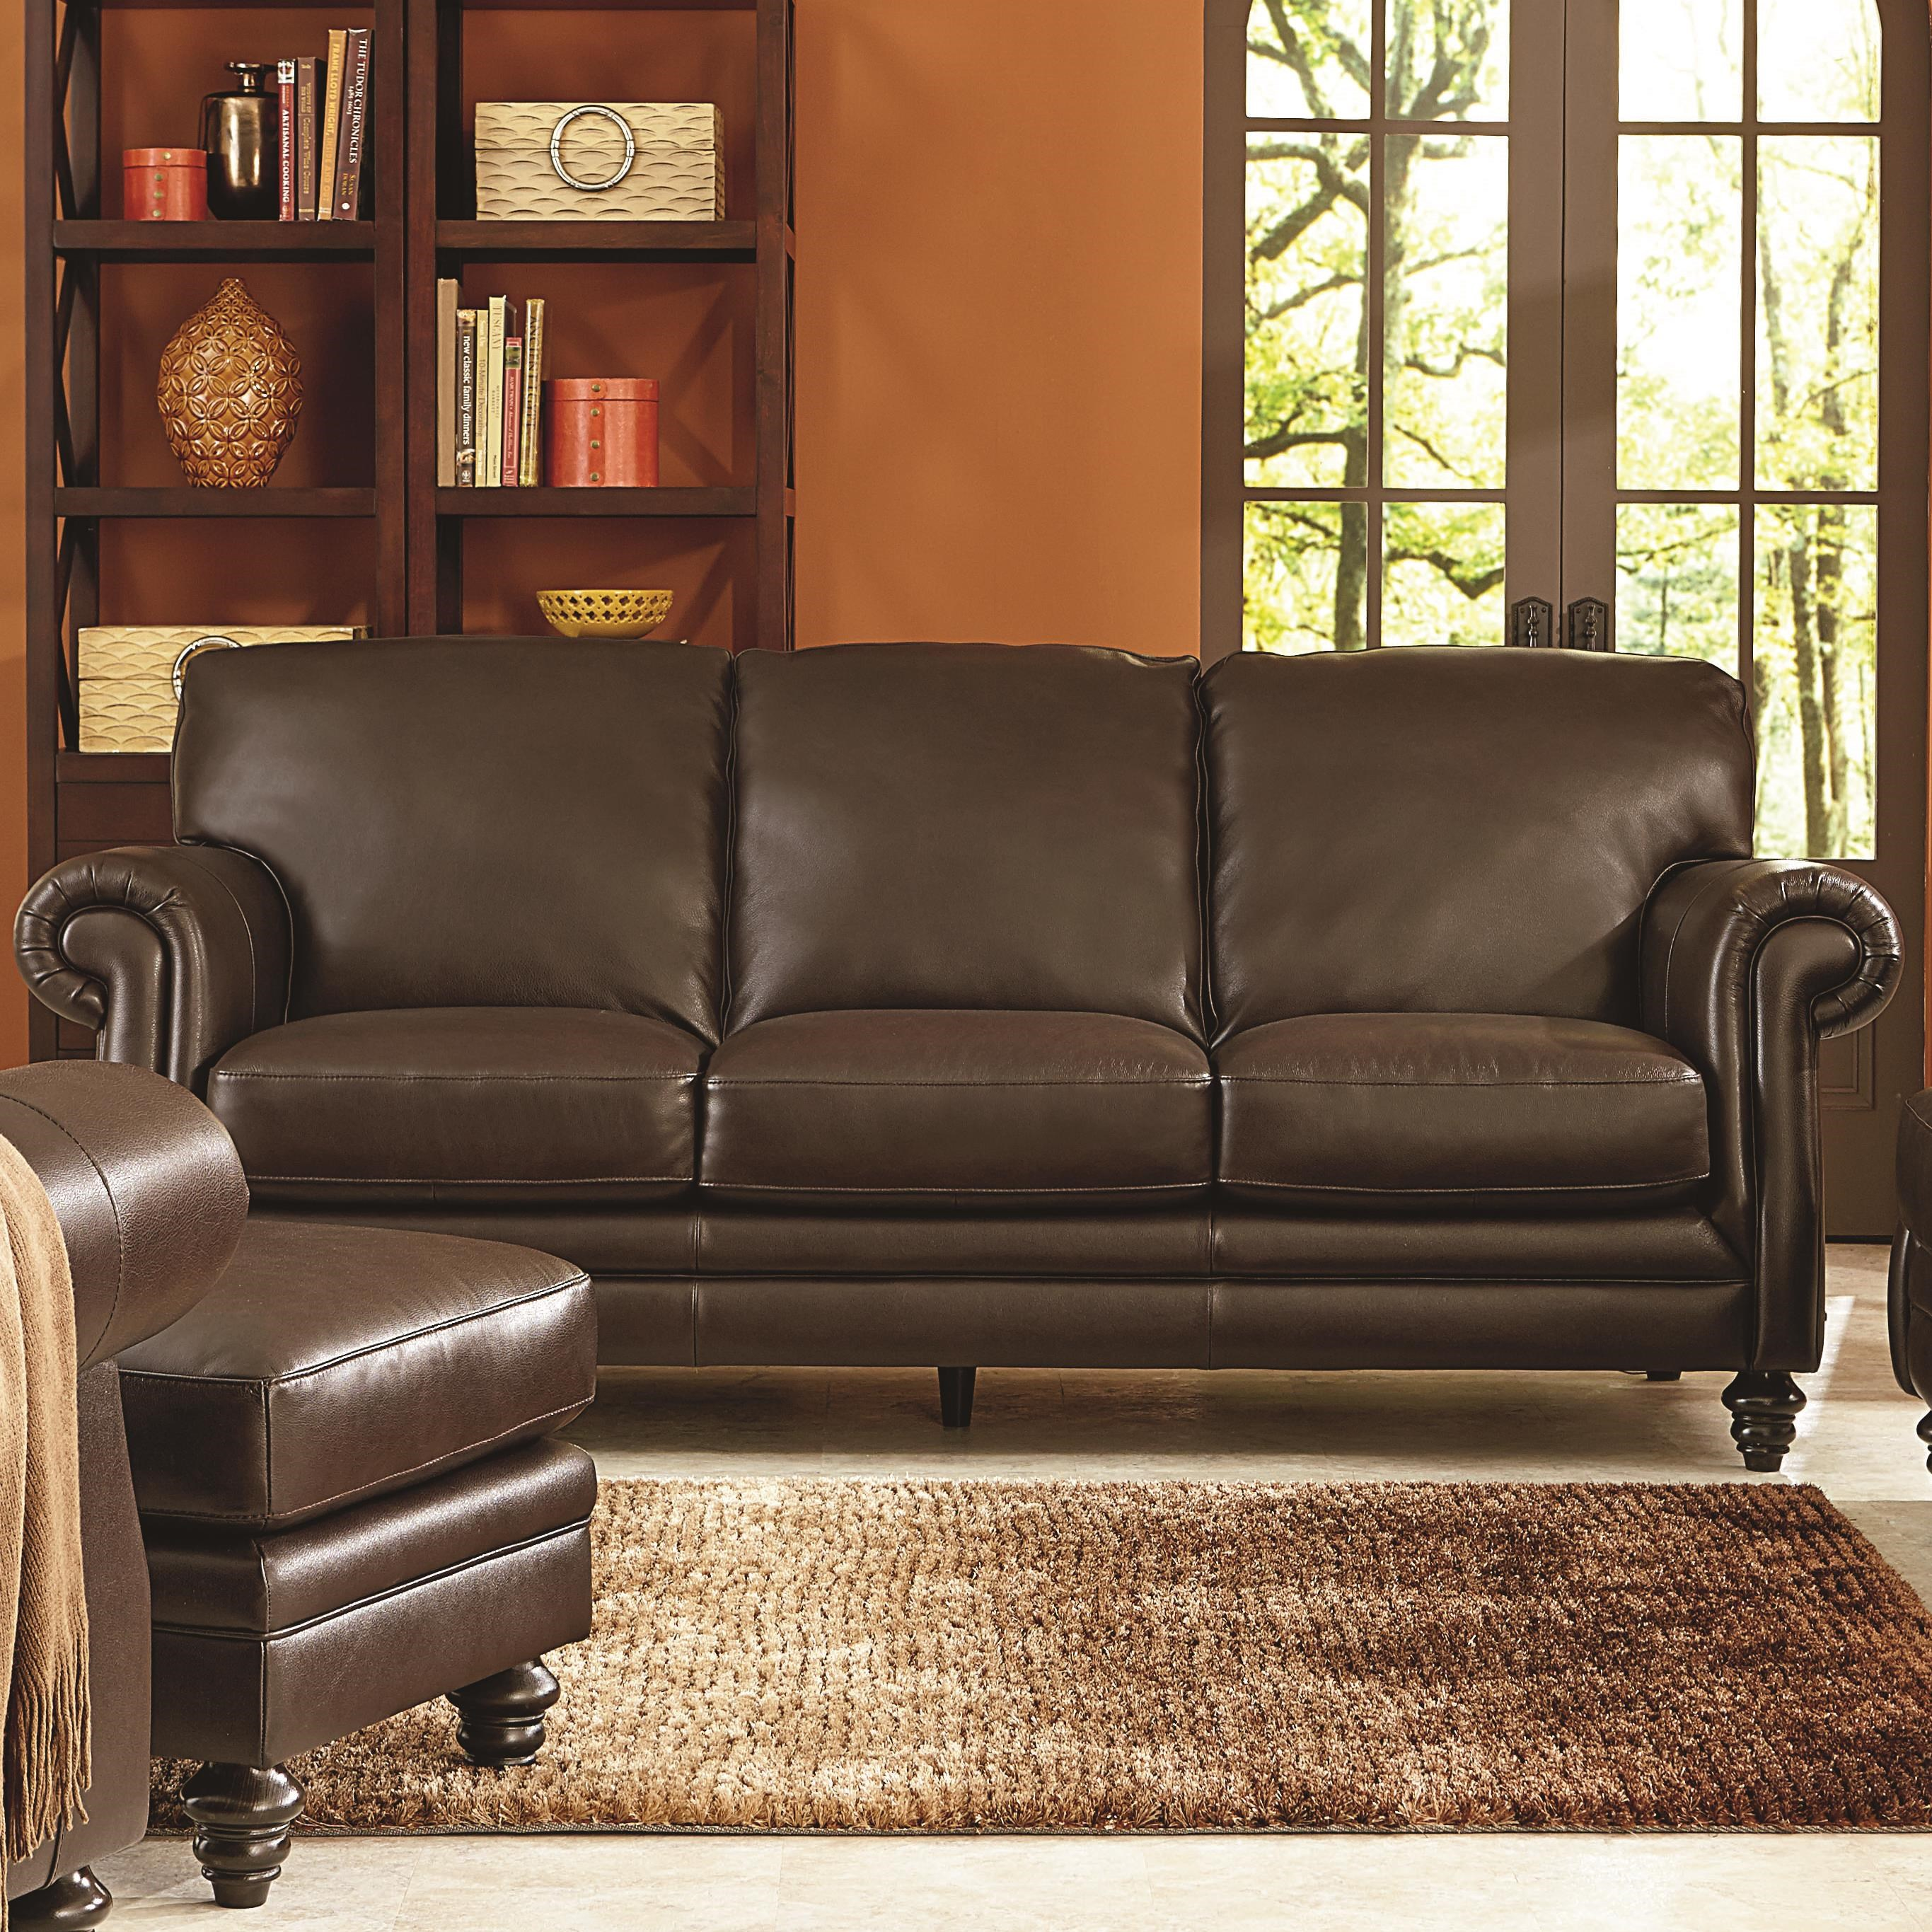 Natuzzi Editions B868 Traditional Sofa with Rolled Panel